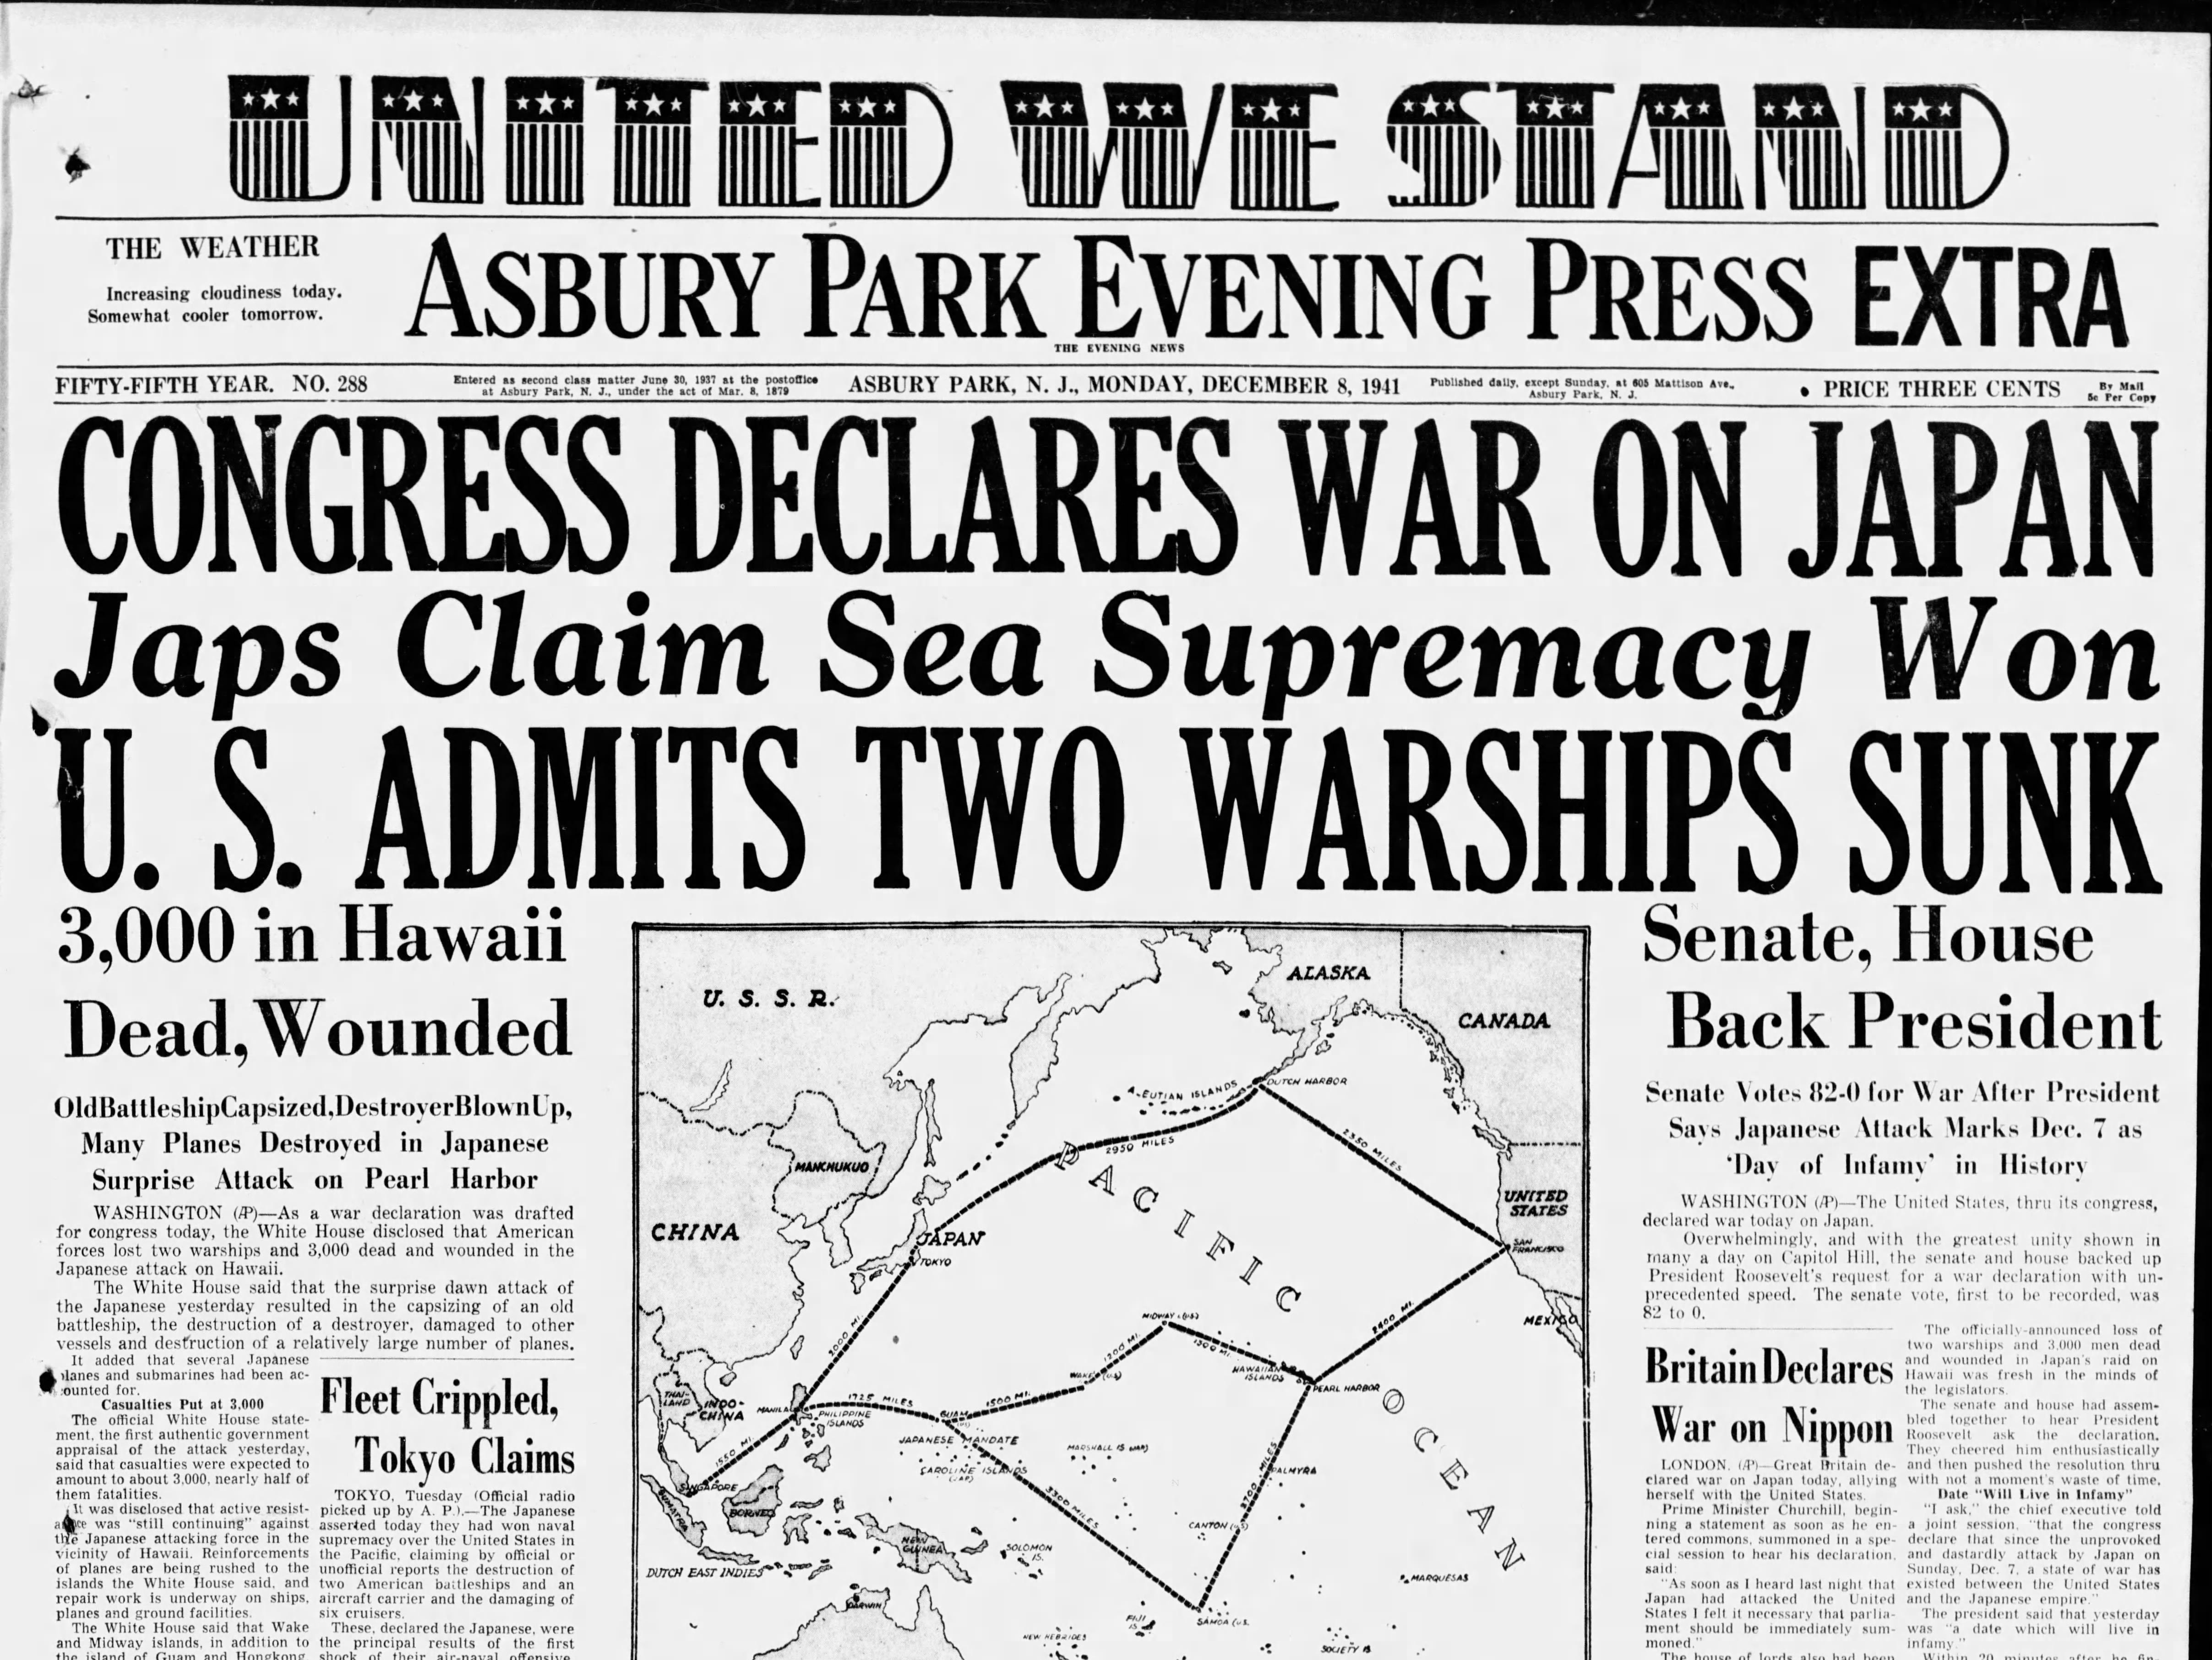 """The United States is neutral no more. A patriotic front page is one of two editions published on Monday, Dec. 8, 1941, one day after the Japanese attack on Pearl Harbor. This second or """"extra"""" edition was ordered after Congress formally declared war on Japan."""